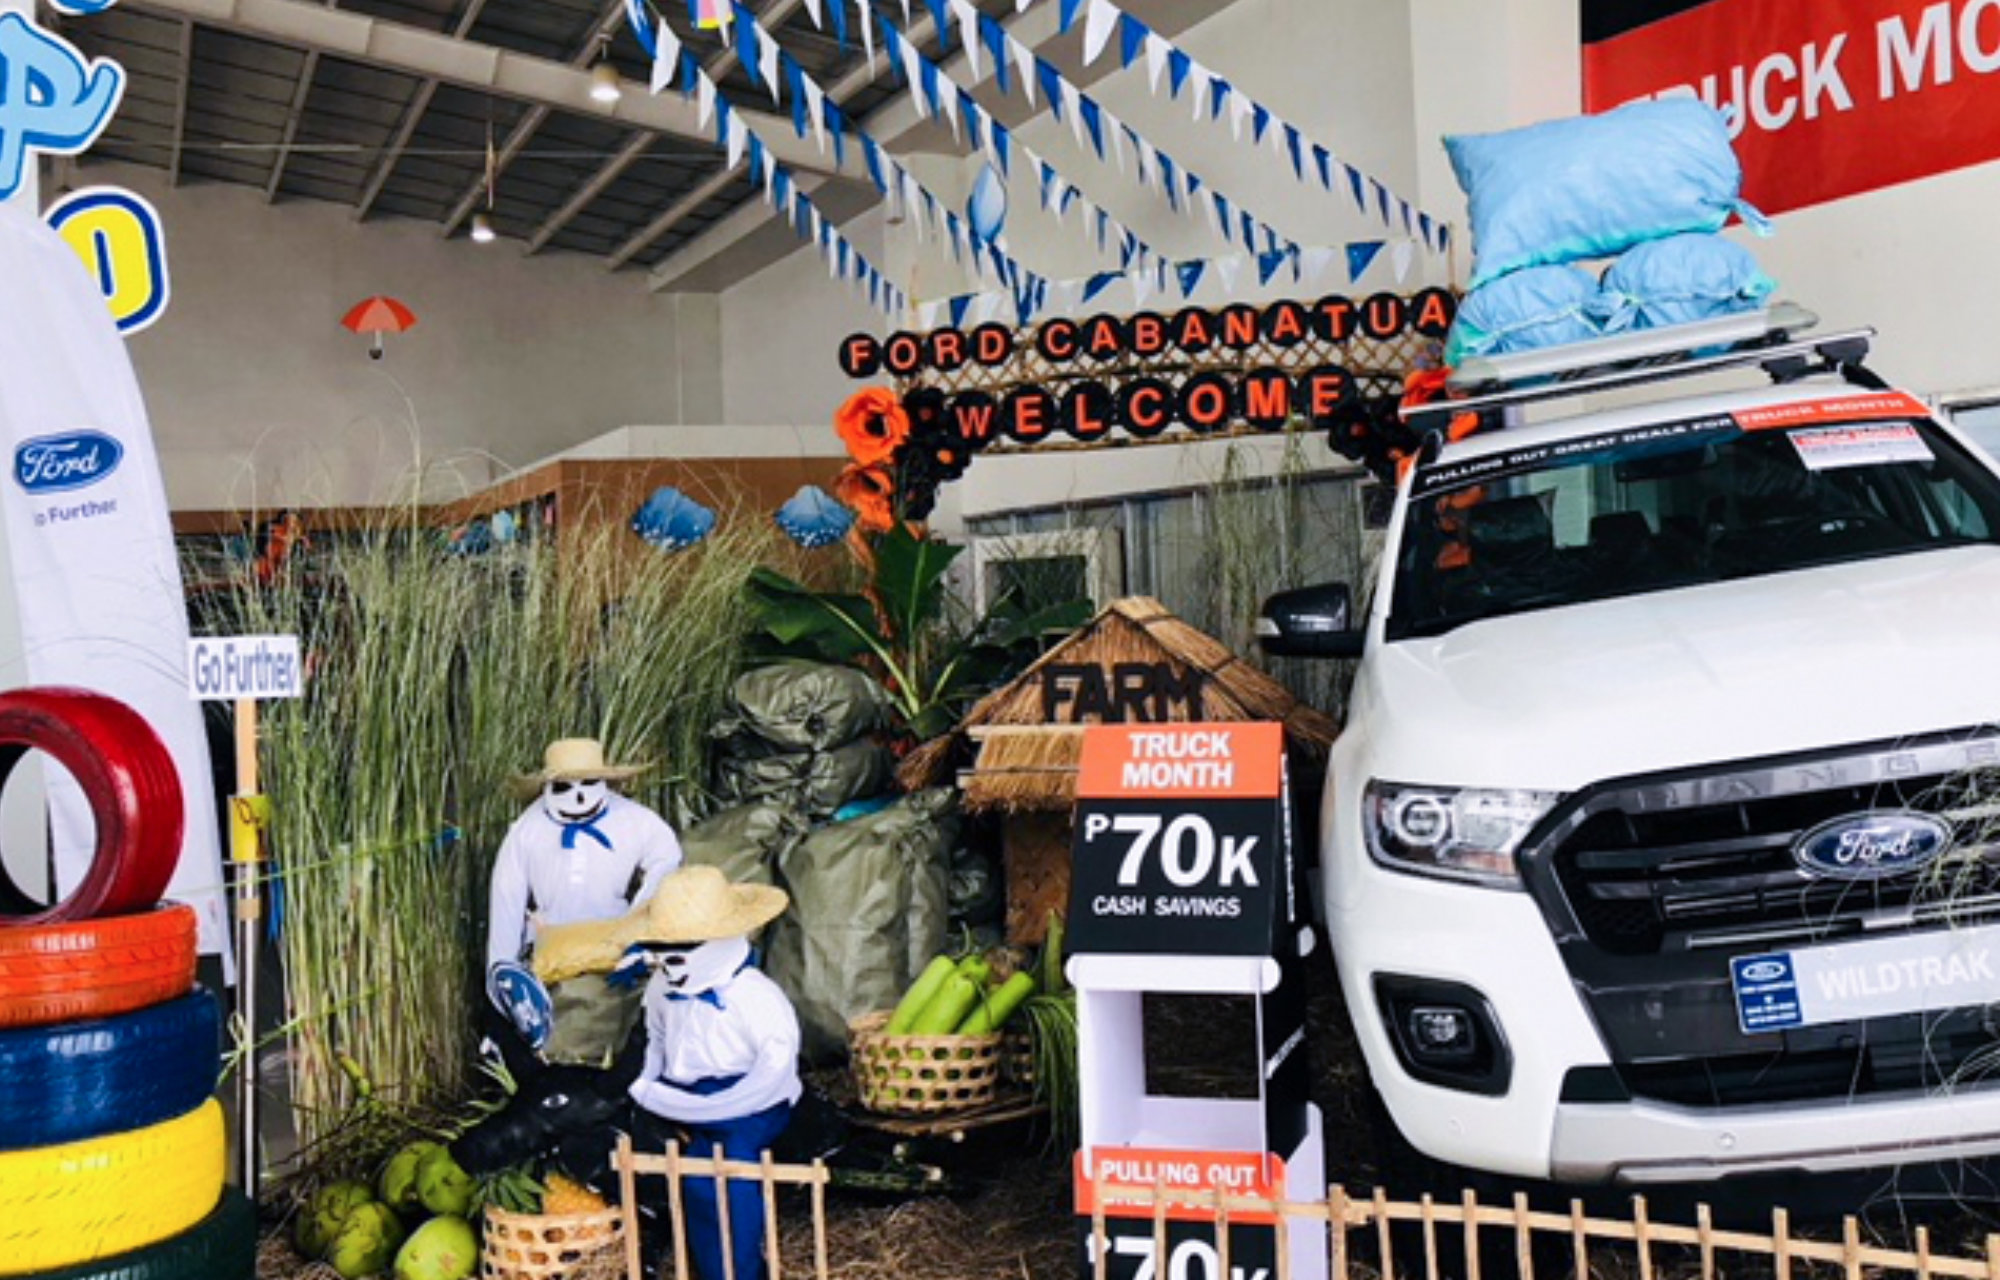 ford cabanatuan - rice capital